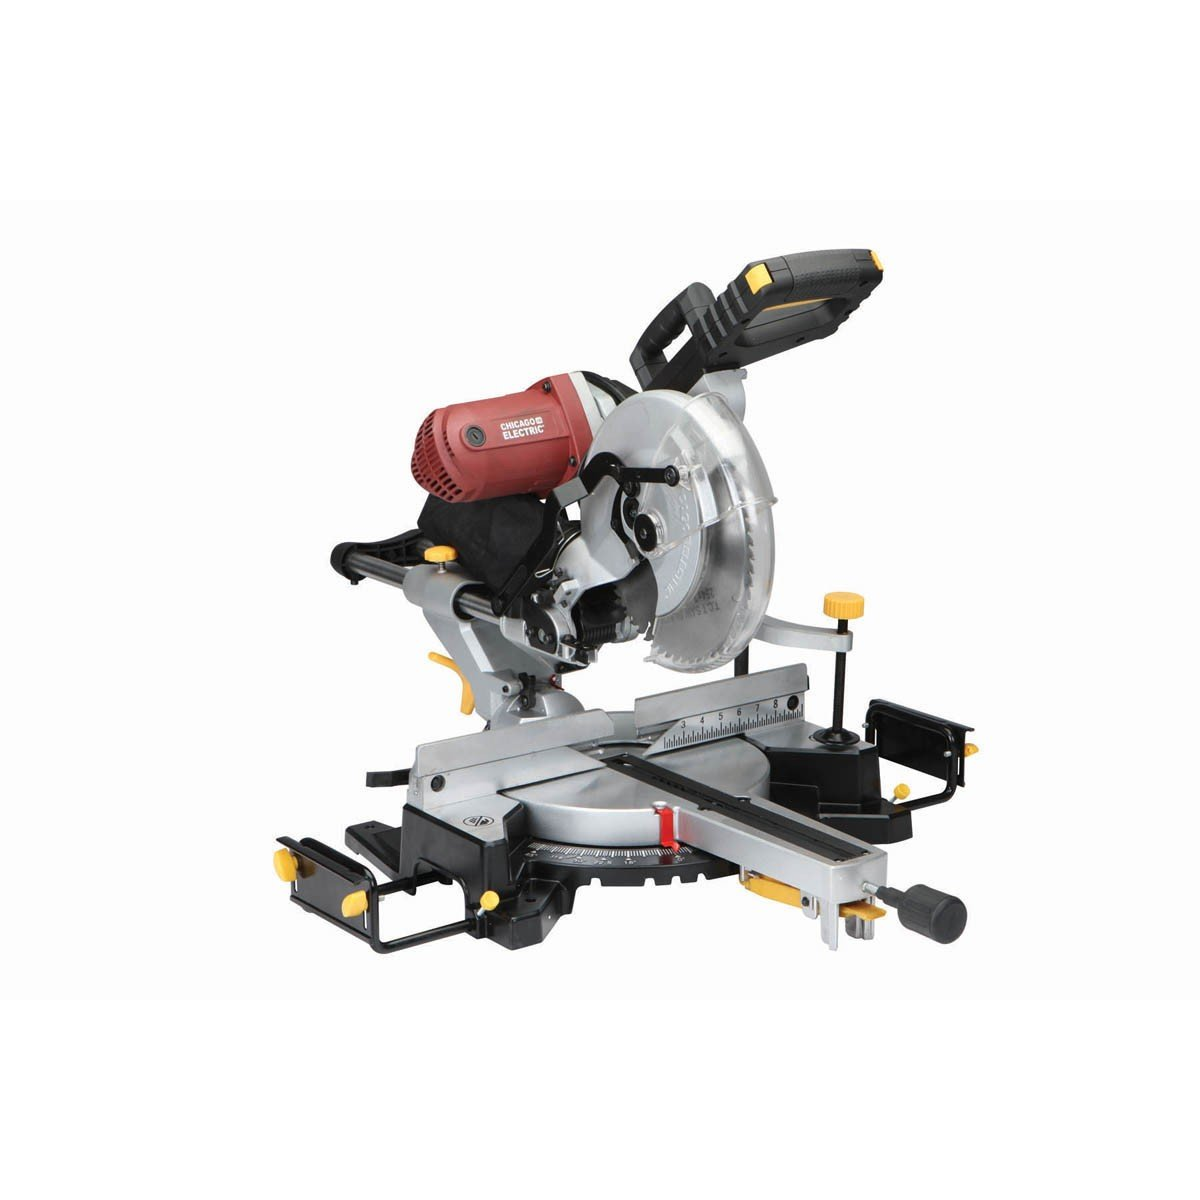 12 inch double bevel sliding compound miter saw with laser guide 15 12 inch double bevel sliding compound miter saw with laser guide 15 amp comes with dust bag machined aluminum fence extension bars table clamp greentooth Choice Image